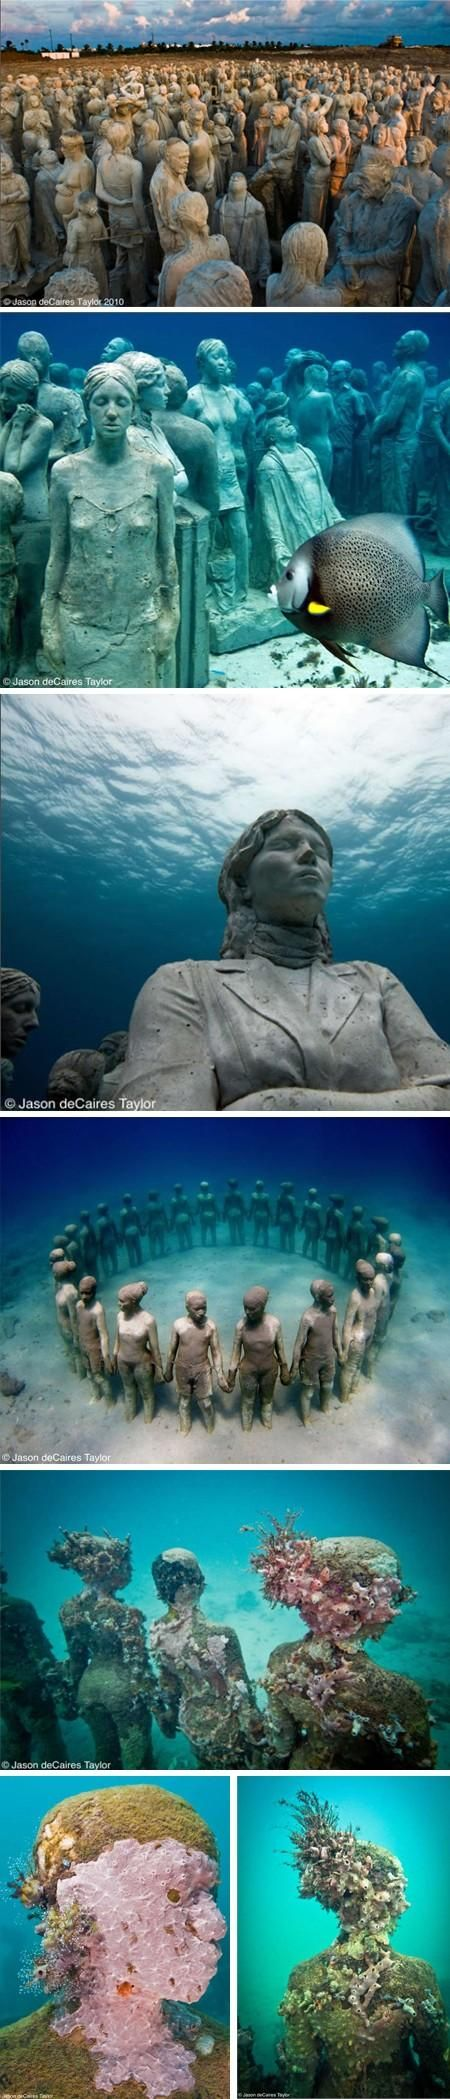 """""""CREEPY!!! Jason de Caires Taylor's underwater sculpture garden in Cancun. Constructed out of concrete and steel, and bolted to the ocean substrate, the works here act as artificial reefs that provide """"an ideal habitat for filter feeding organisms.""""  http://www.dedeceblog.com/2010/10/13/cancun/"""" & every Whovian in the world shouted """"DON'T BLINK!!!"""""""